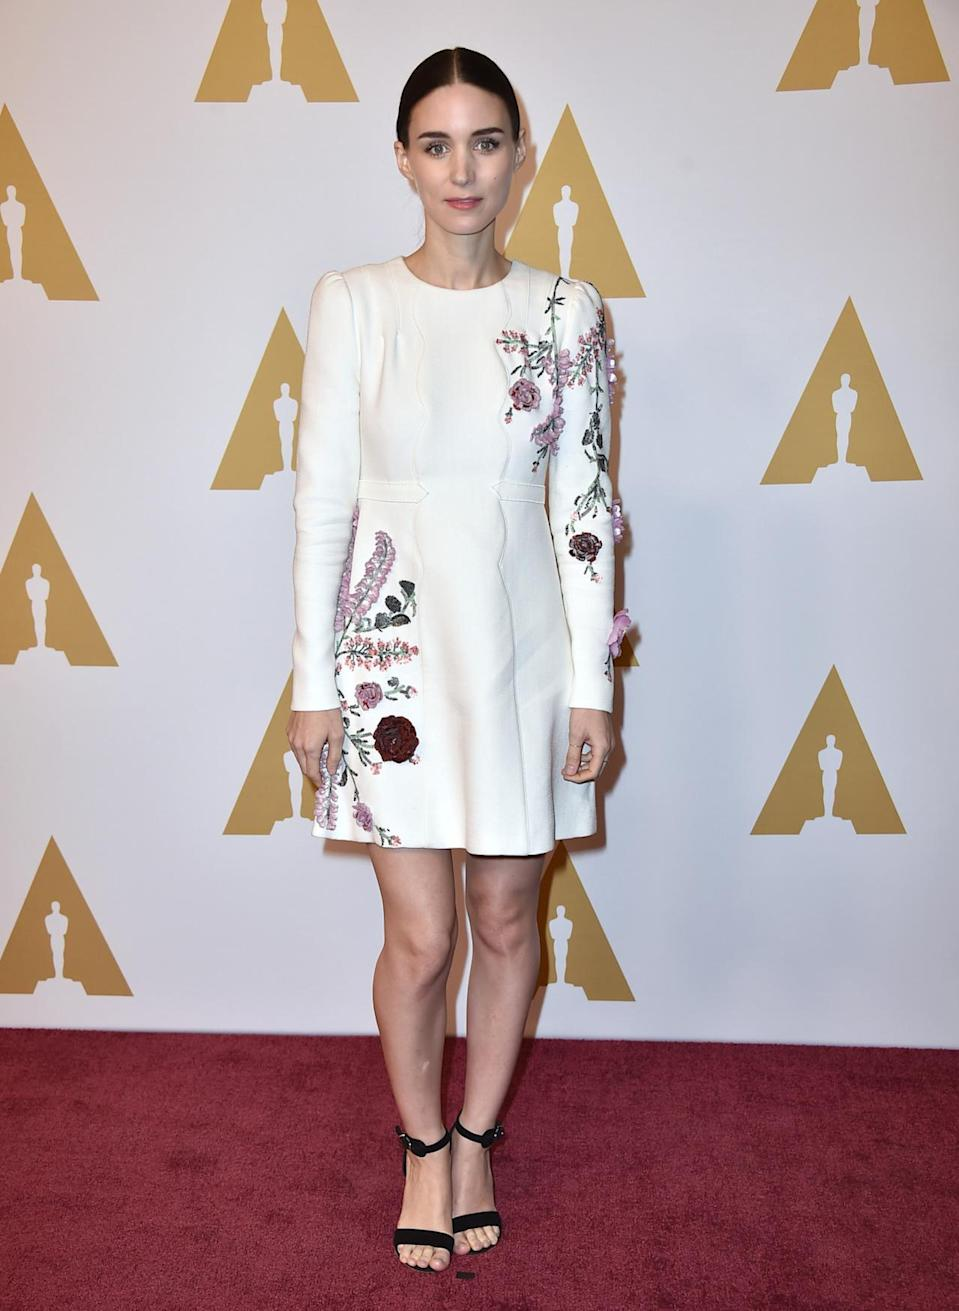 """<p>""""I hadn't really had a chance to talk with any of the other nominees about it,"""" she said about the #OscarsSoWhite hashtag. """"I've sort of been in my own little bubble. But I think it's a conversation that's definitely one that we should all be having. On top of it, I read this piece in the <i>New York Times</i> yesterday where they were talking about it and they were also talking about <i>Carol</i> and they were saying there should also be a hashtag #Oscarsostraight. So I think these are all important conversations for us to be having.""""</p><p><i>Photo: AP</i></p>"""